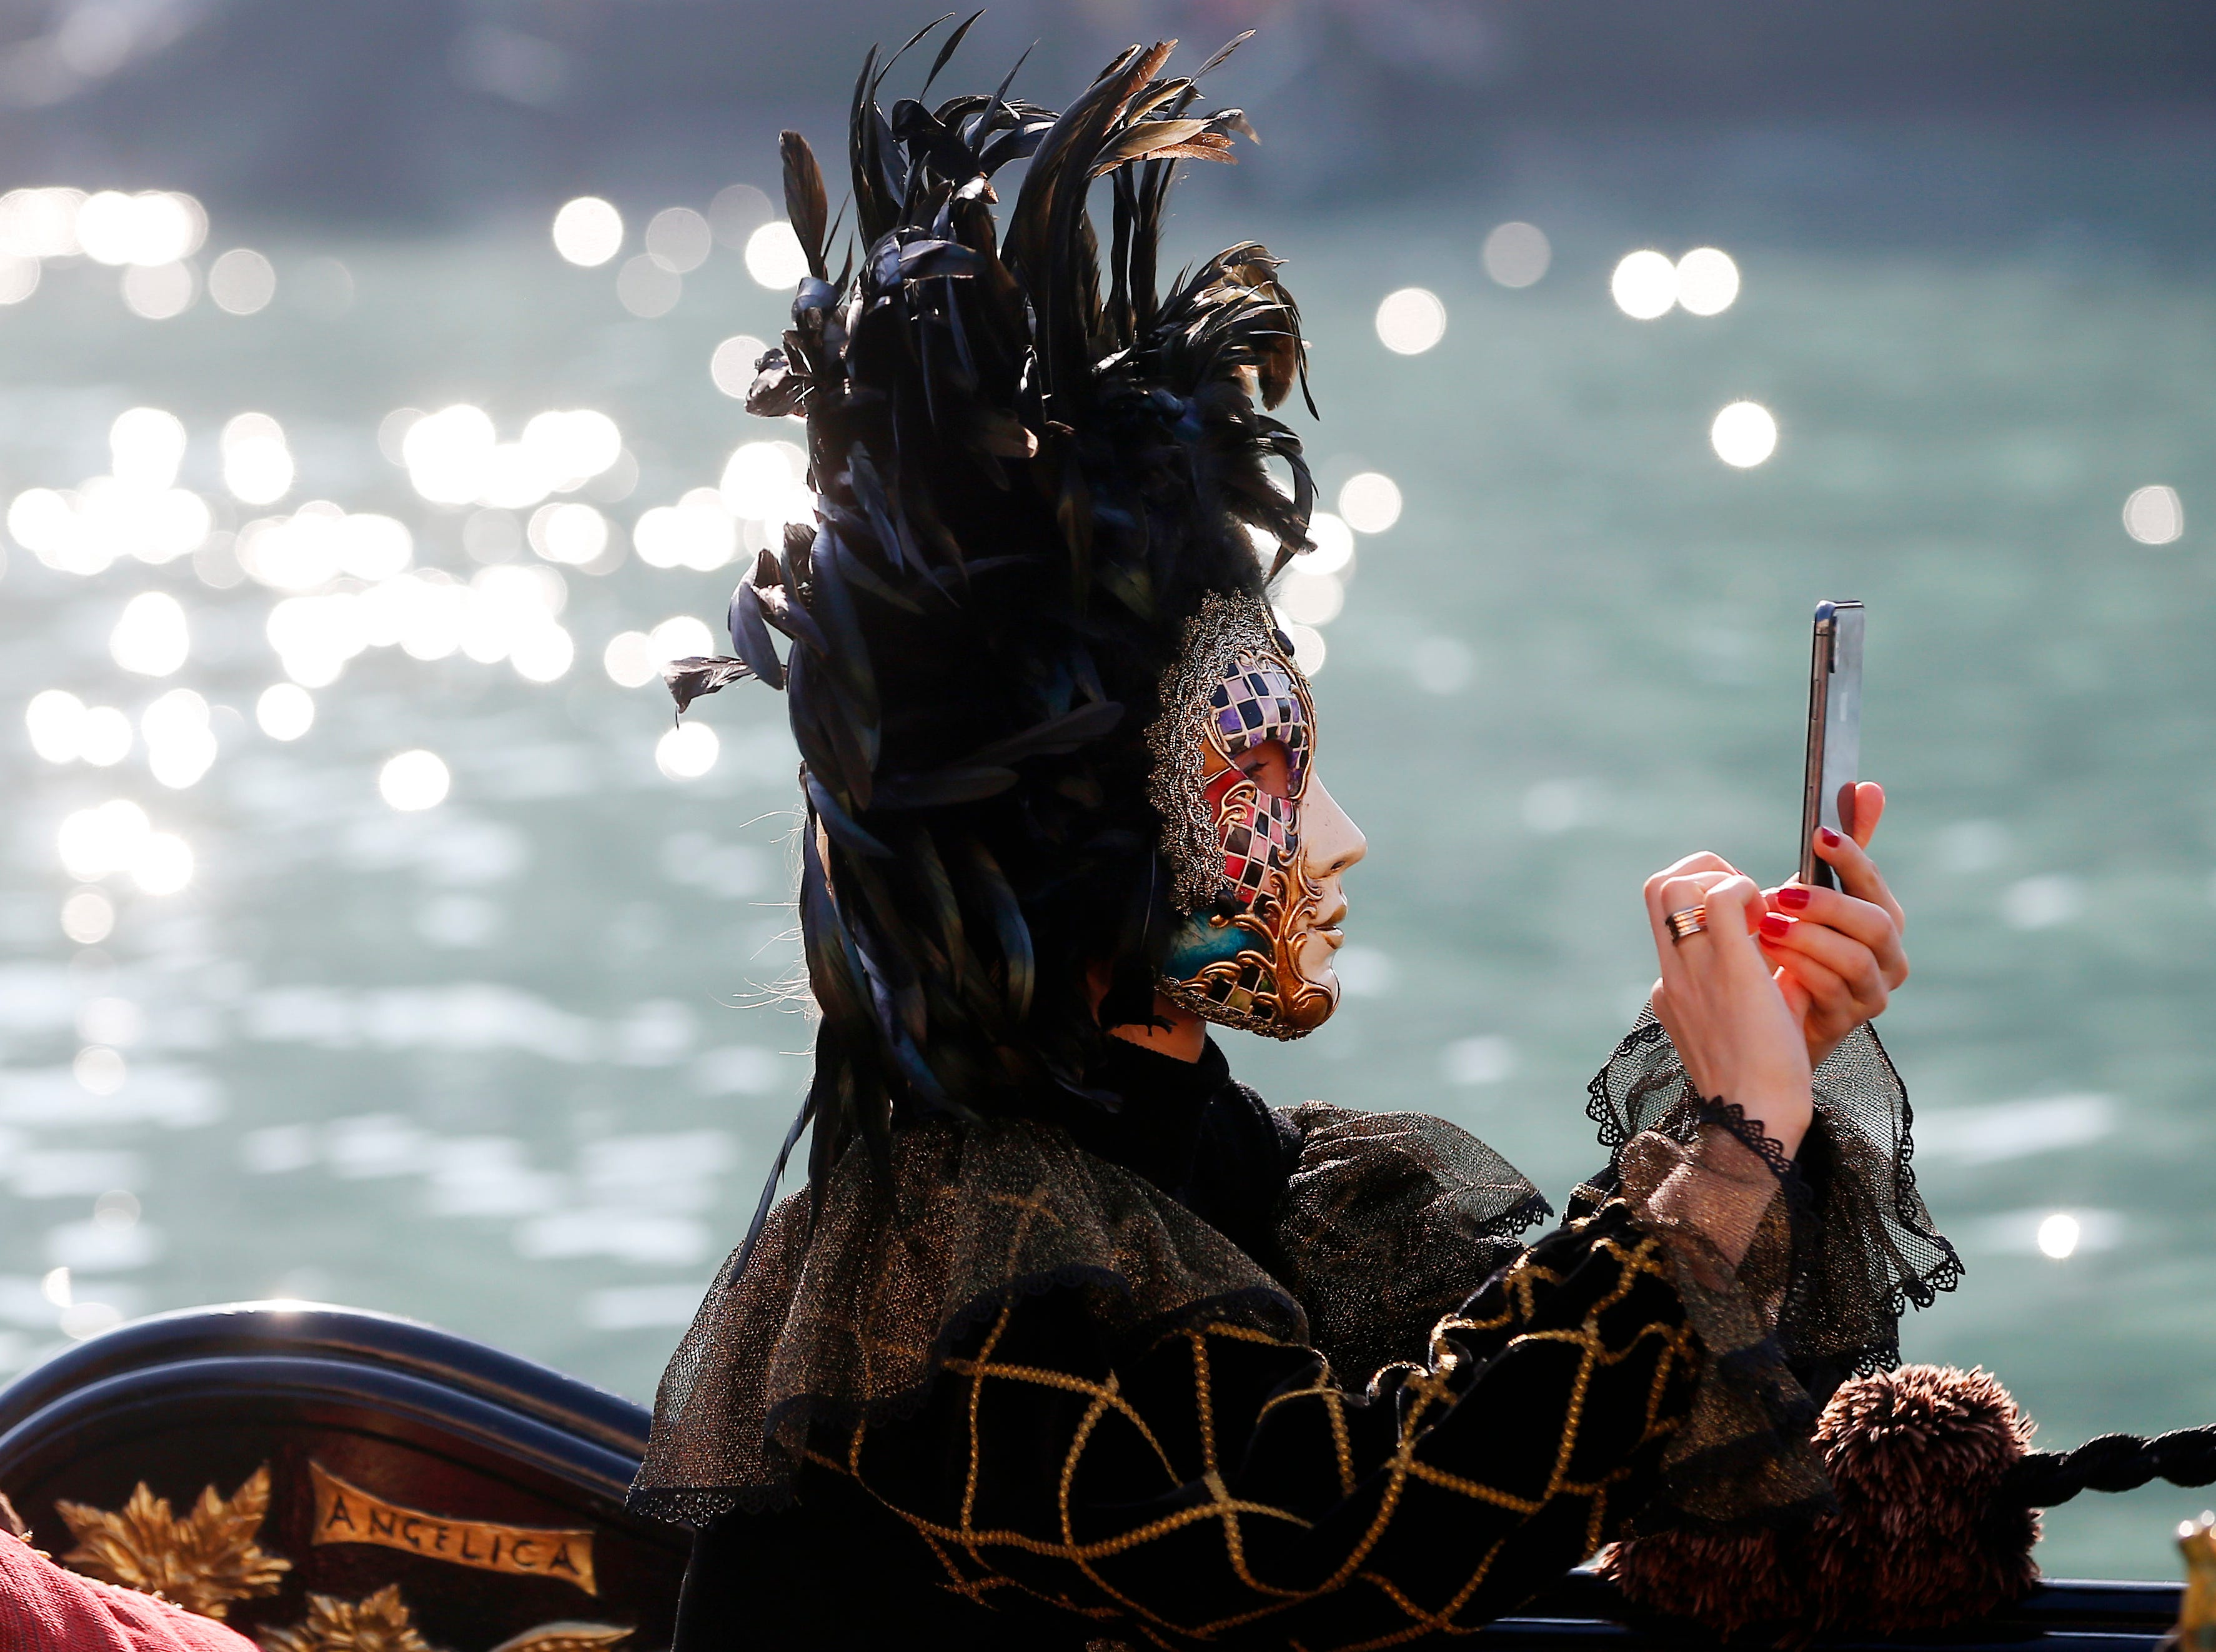 A masked woman checks her smartphone while sitting in a gondola during the water parade, part of the Venice Carnival, in Venice, Italy, Sunday, Feb. 17, 2019. The Venice carnival in the historical lagoon city attracts people from around the world.